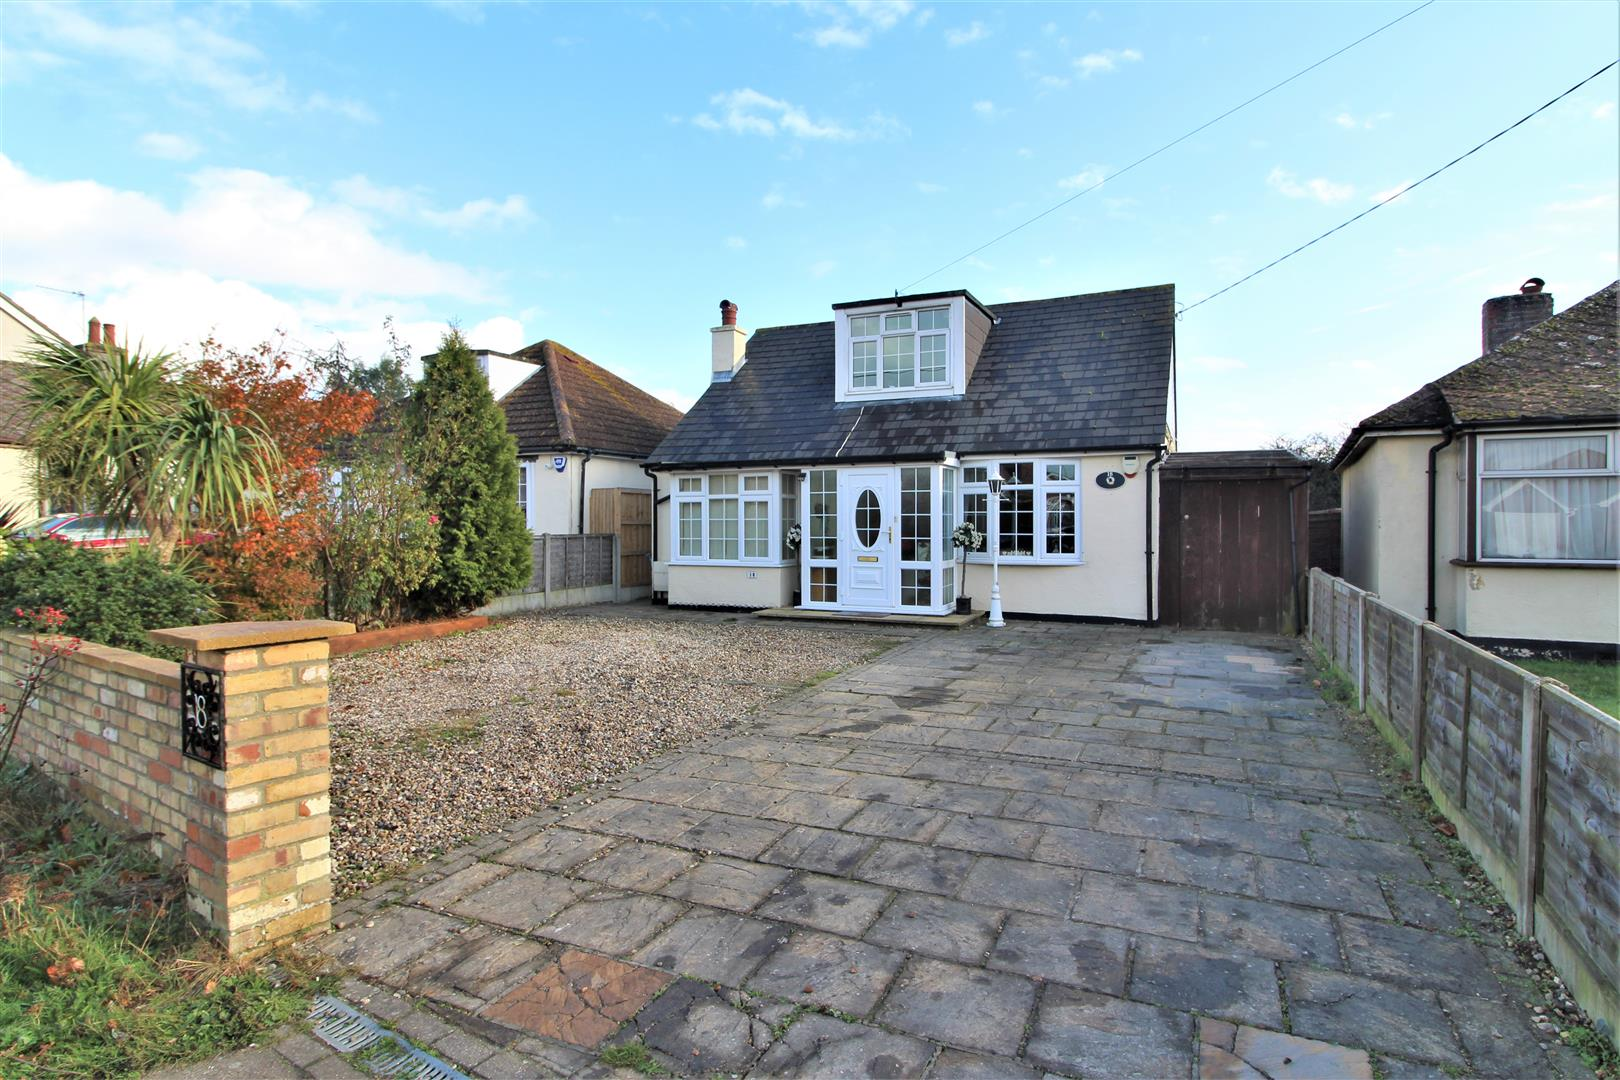 Halstead Road, Kirby Cross, Essex, CO13 0LW